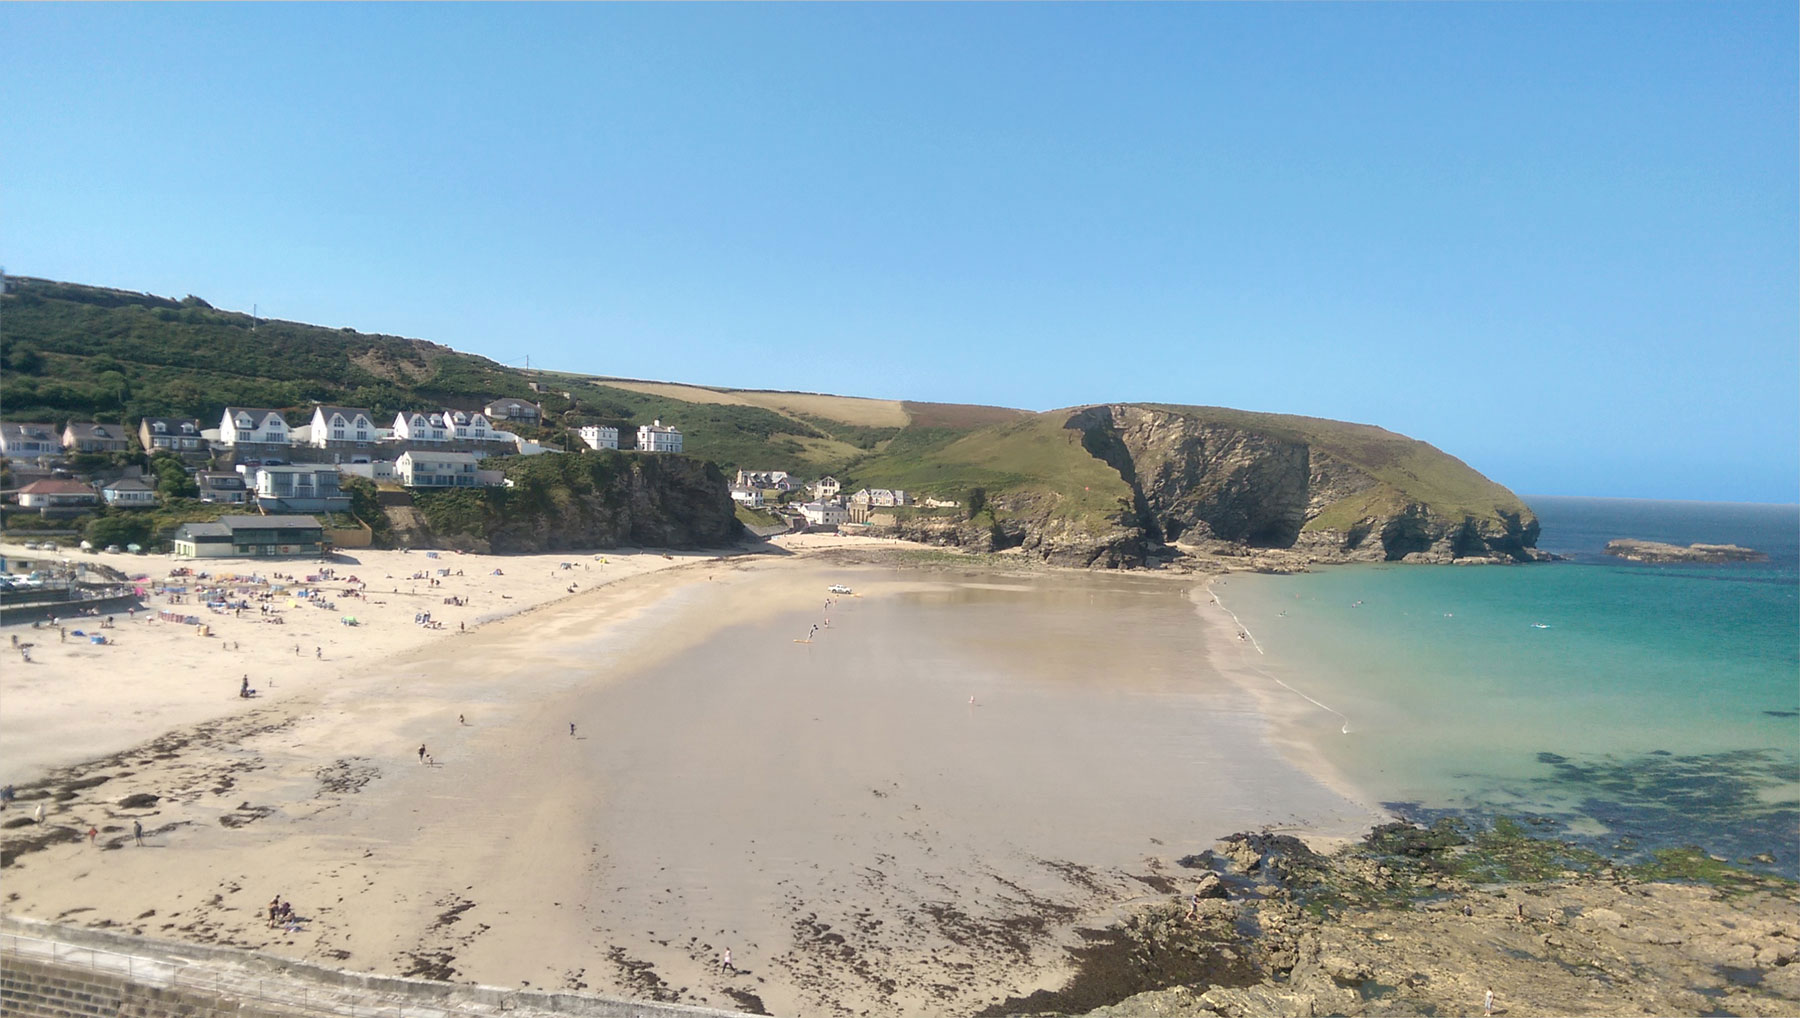 View of Portreath Beach with blue skies and clear blue water